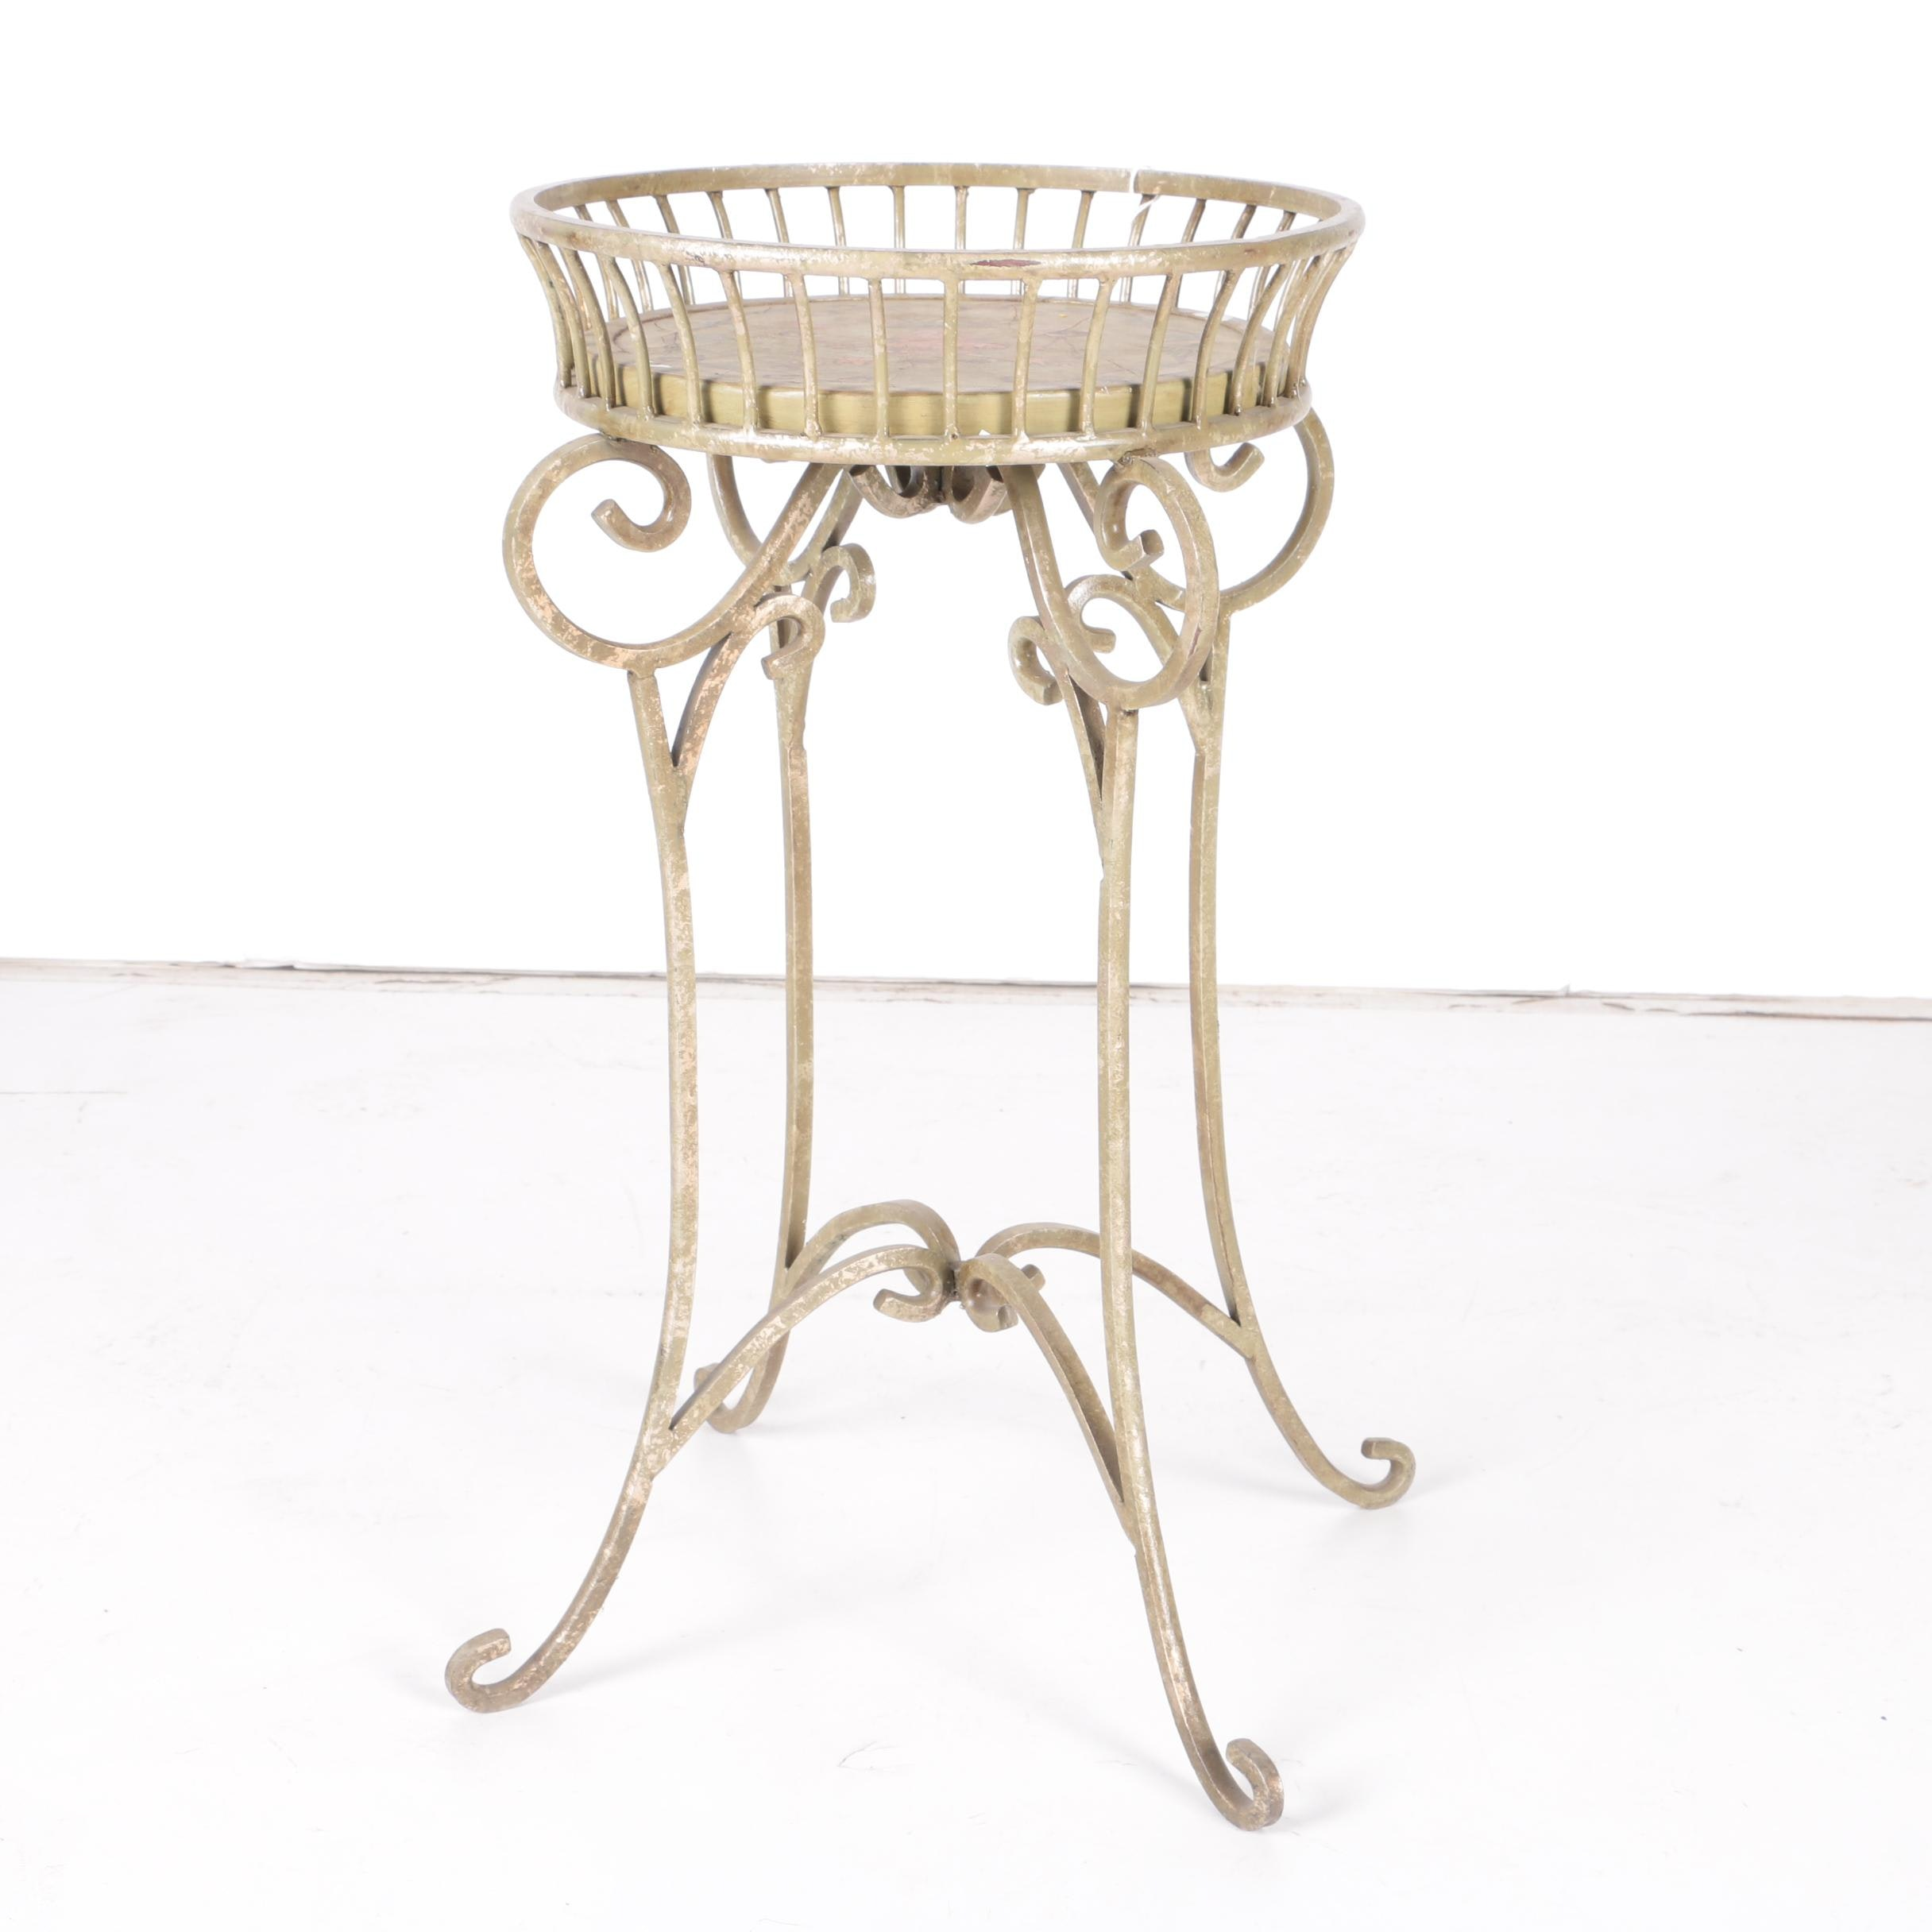 Vintage Neoclassical Style Plant Stand